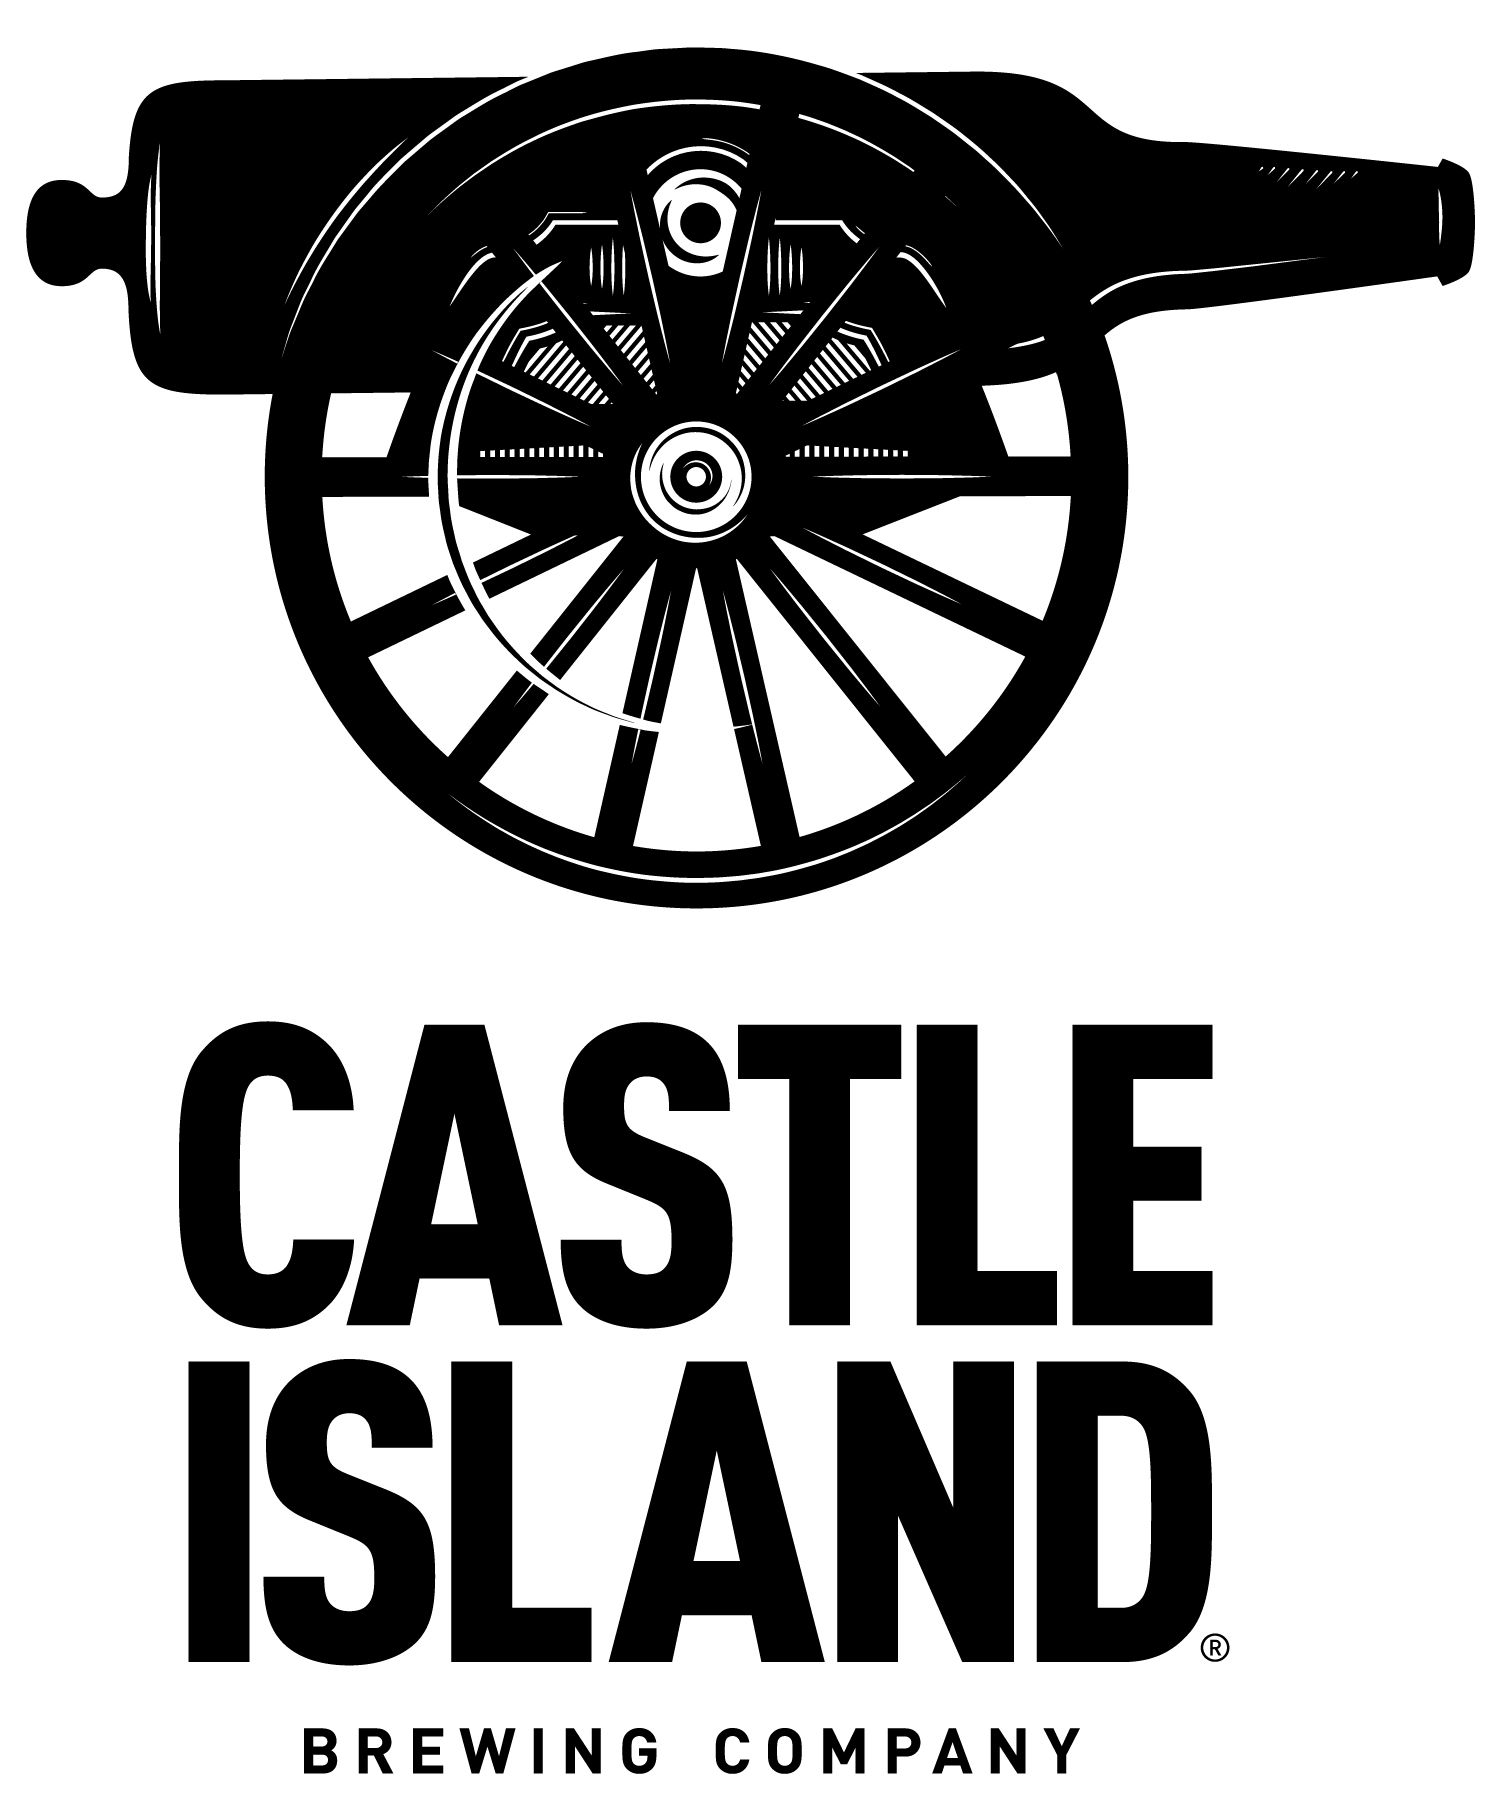 Castle Island Brewing